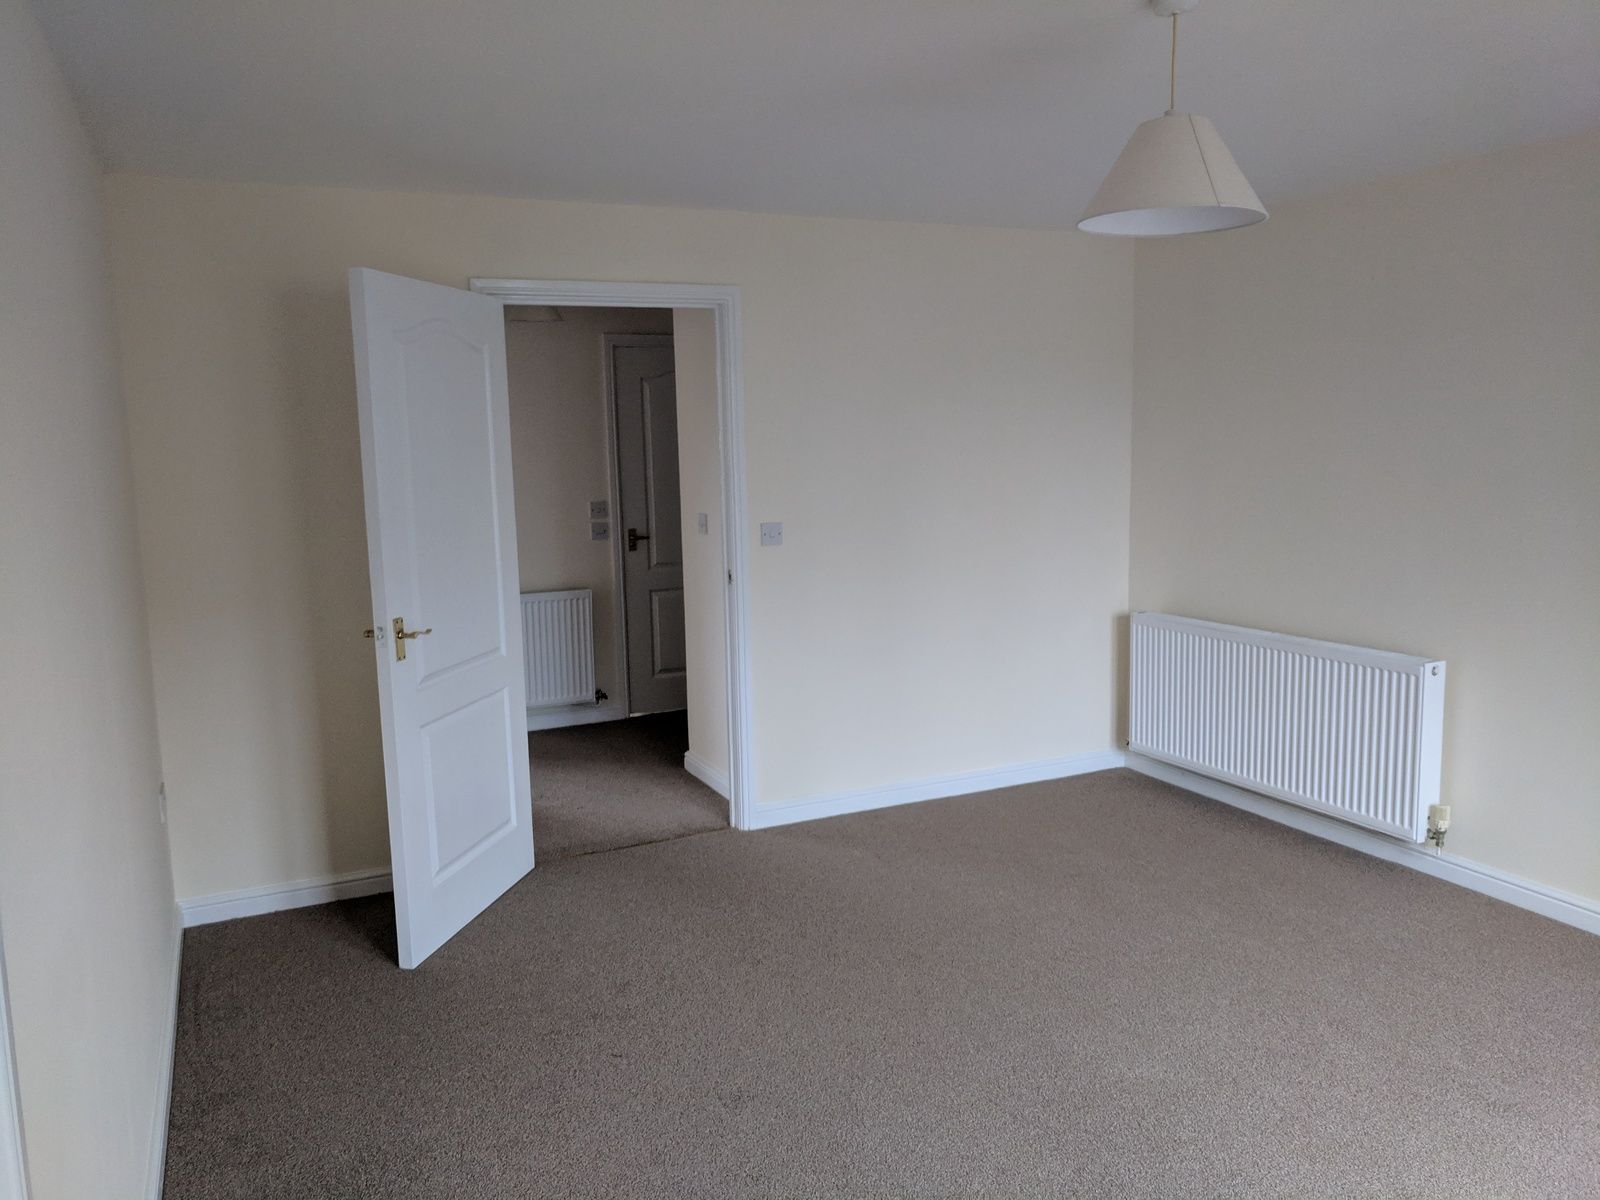 2 bedroom apartment flat/apartment SSTC in Ipswich - Photograph 2